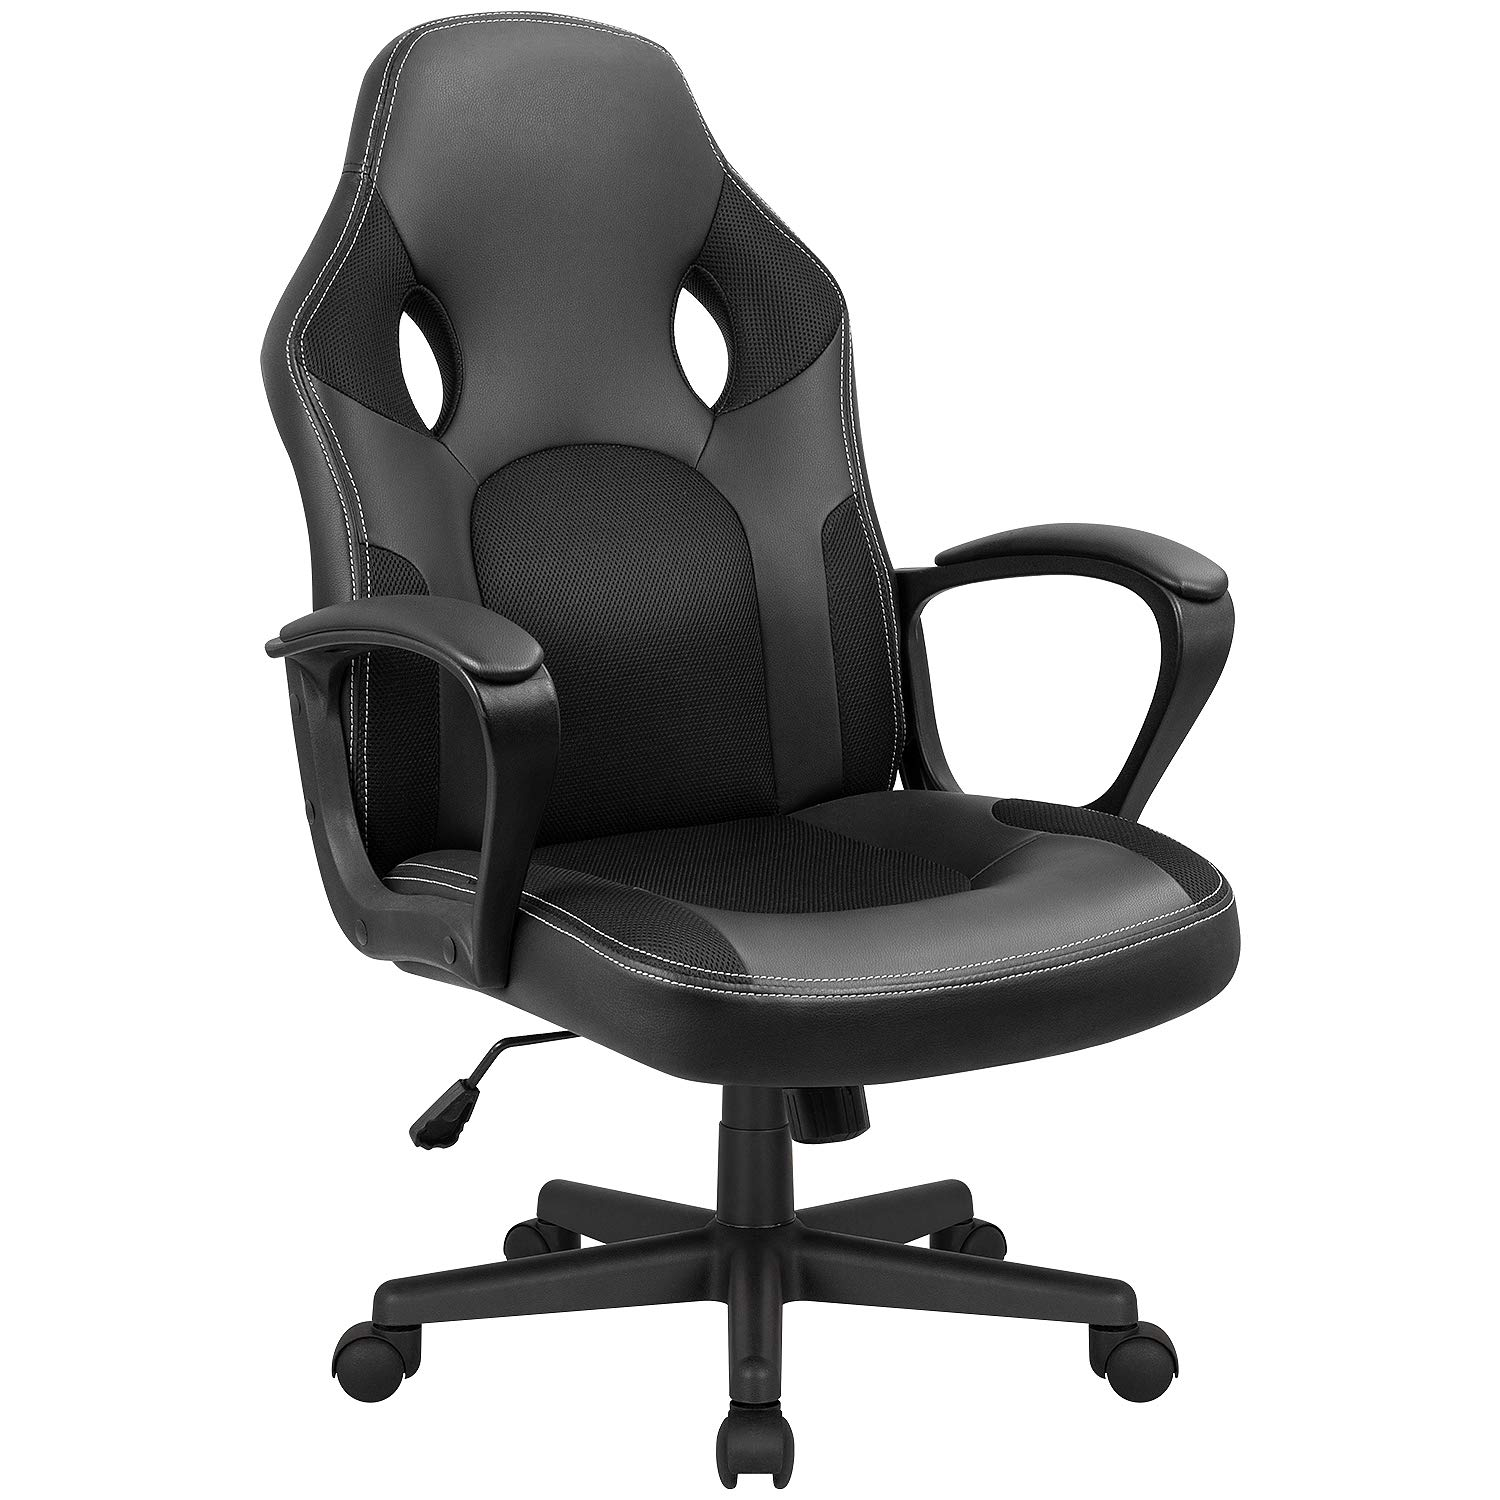 Kaimeng Office Chair Gaming Ergonomic Chair High Back Leather Adjustable Desk Chair Executive Computer Racing Chair Black